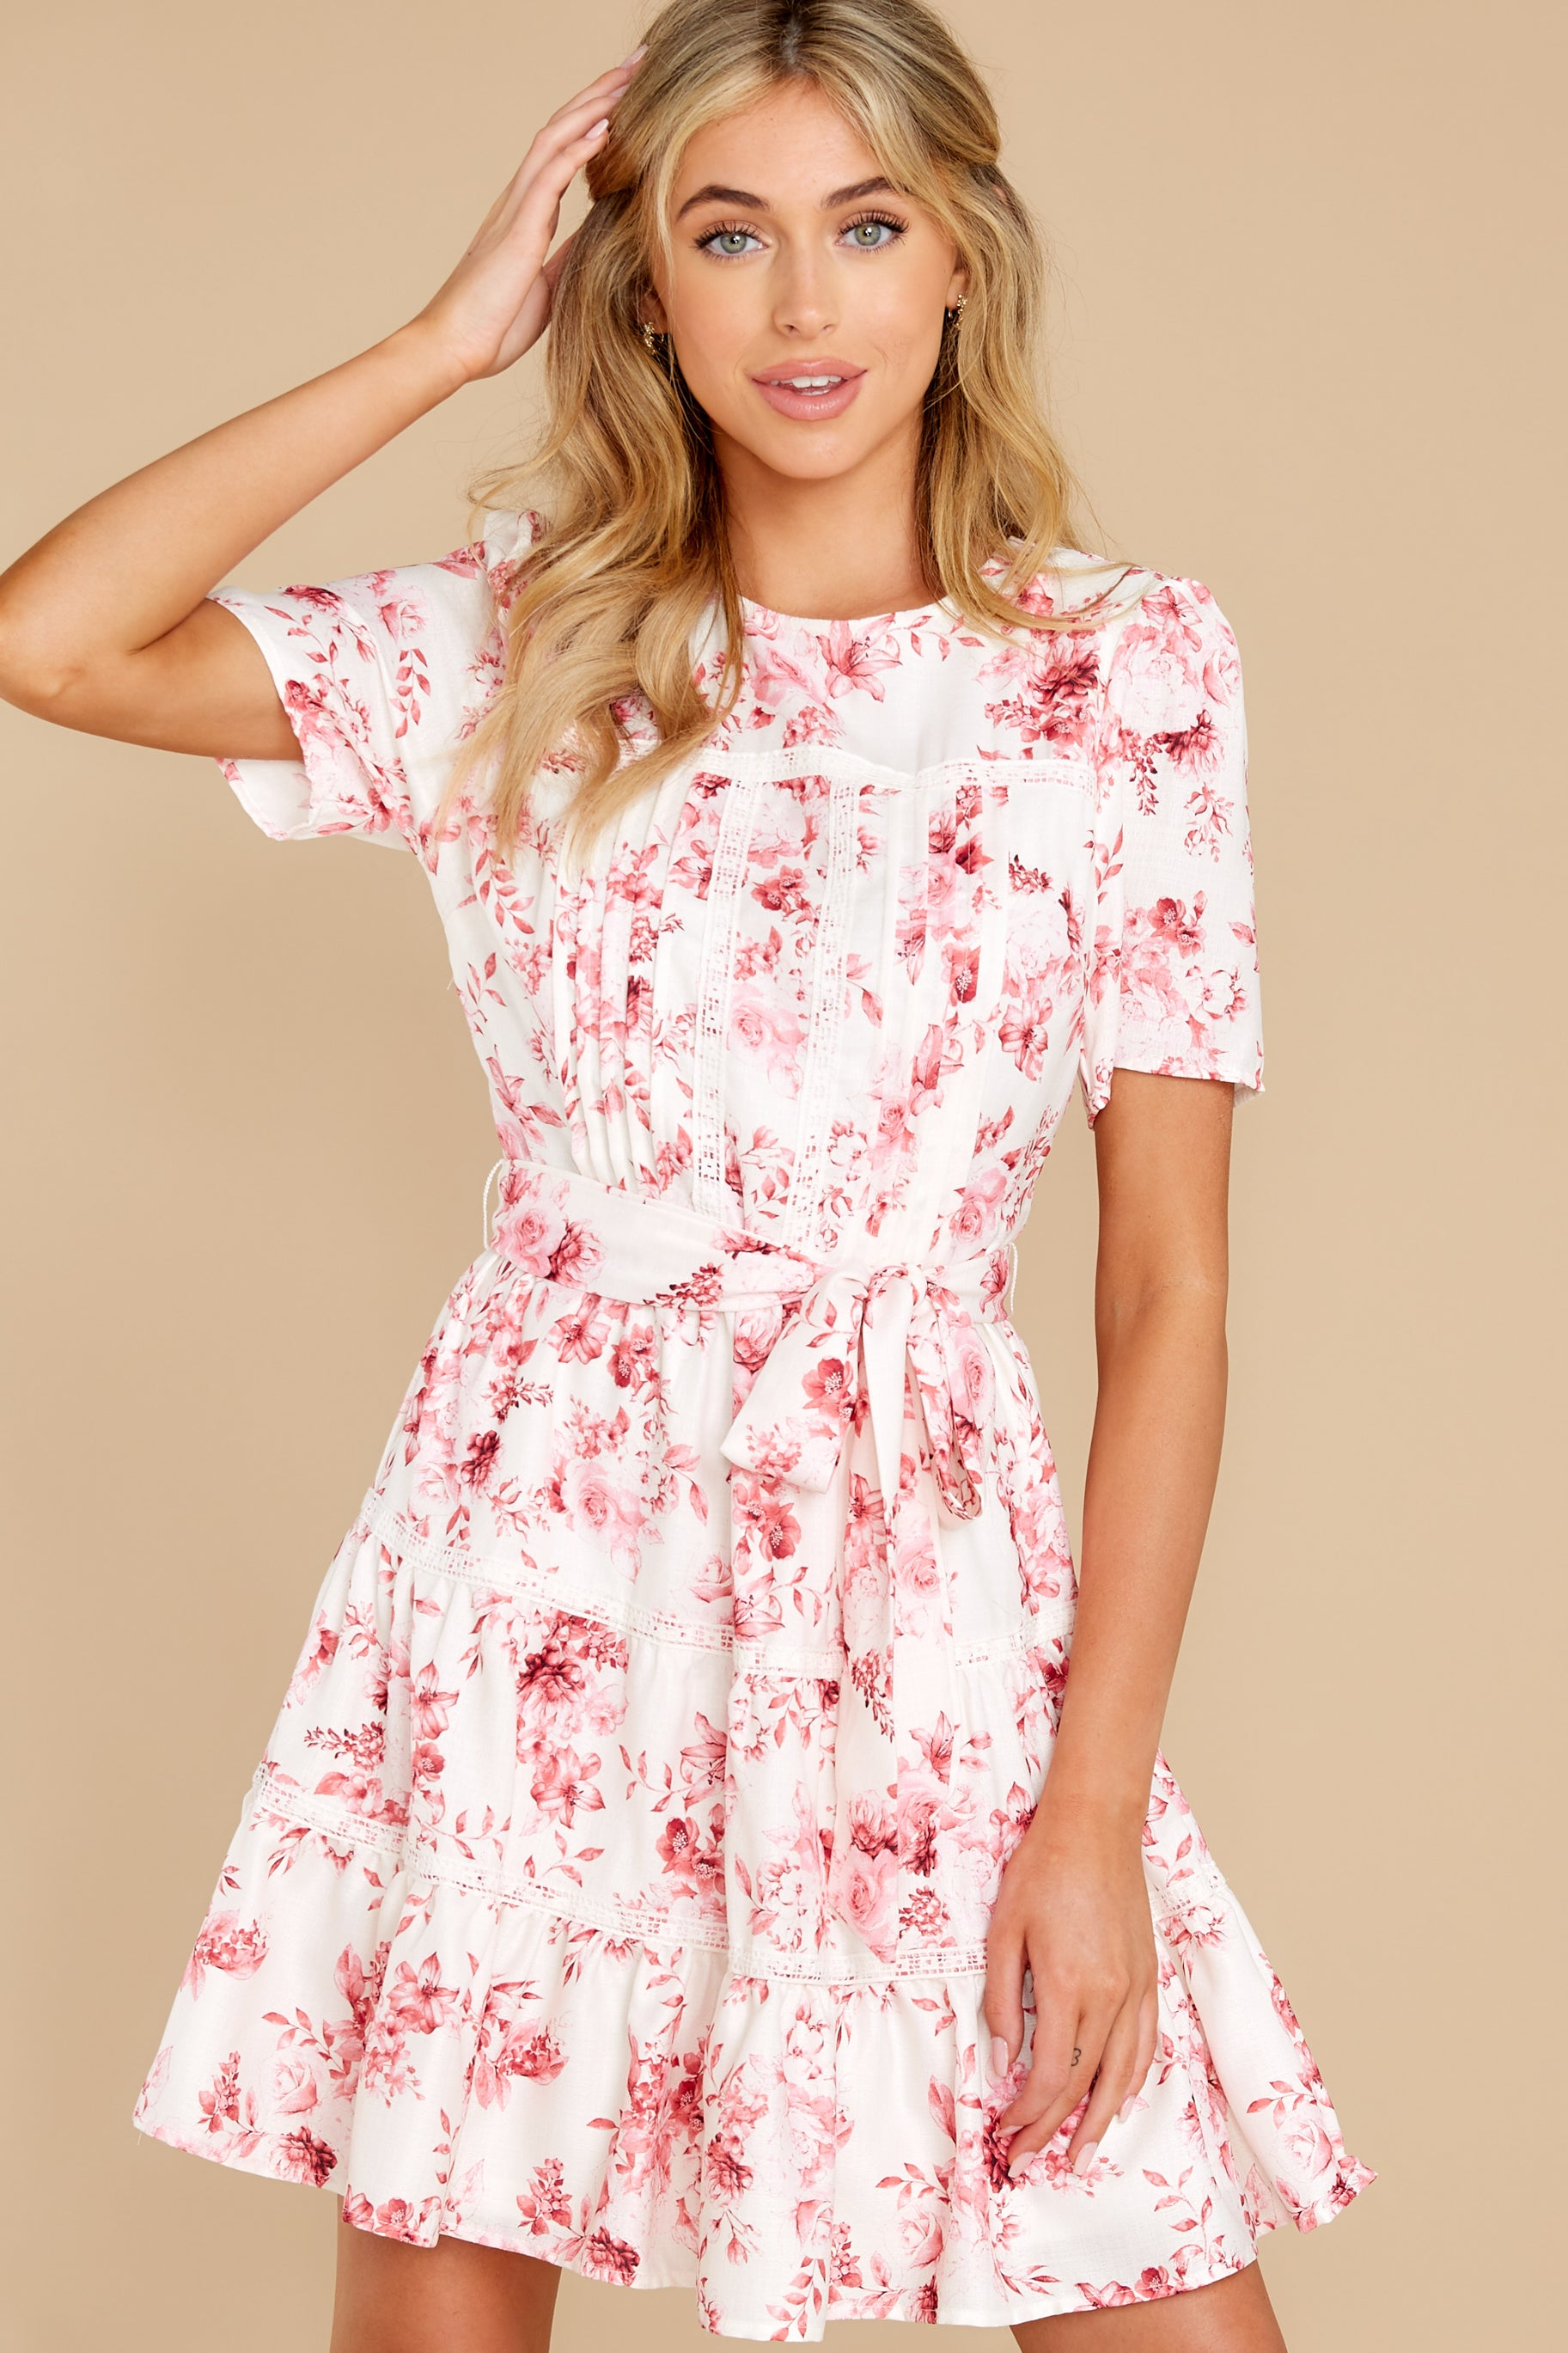 7 Curious Hearts Pink Floral Print Dress at reddress.com